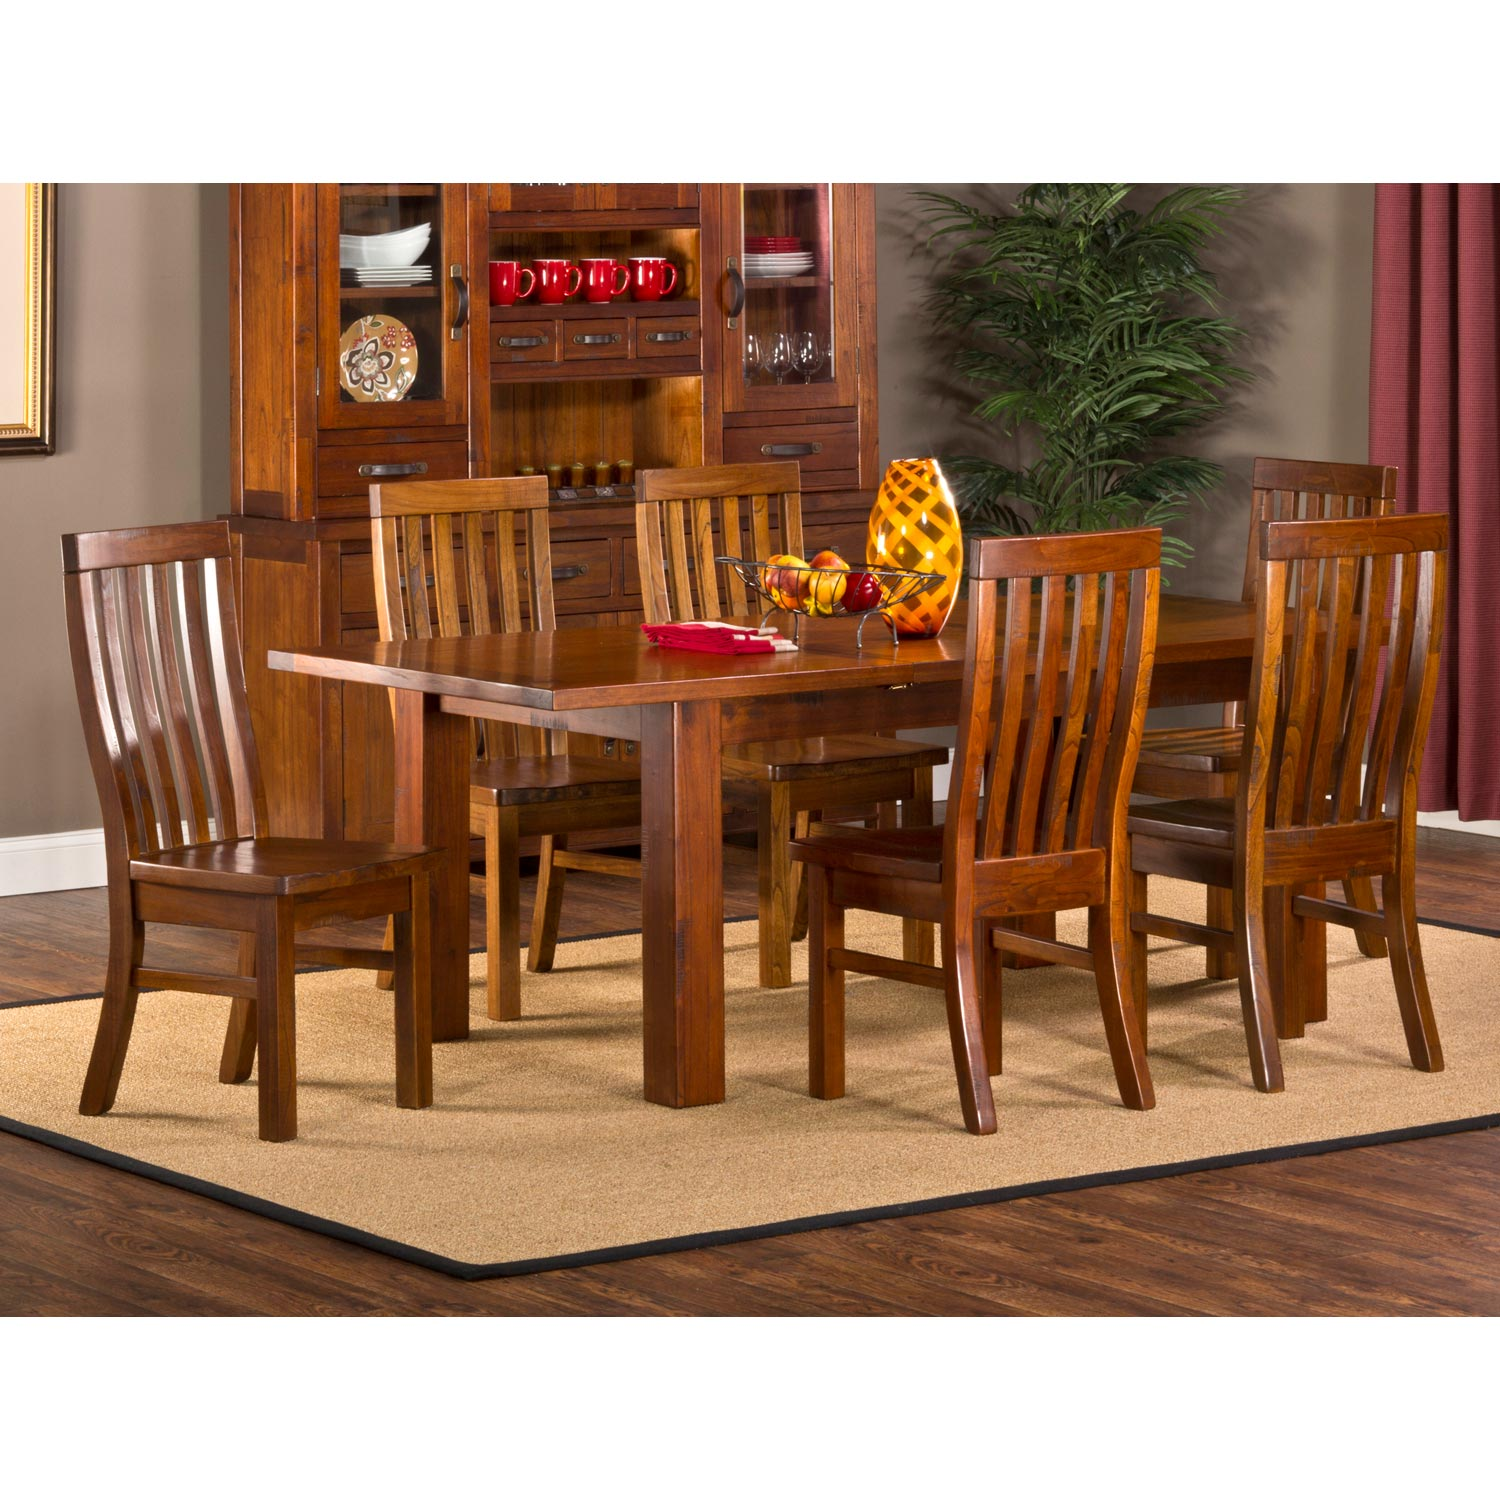 Outback Dining Table Extension Leaf Distressed Chestnut  : 4321dtbec7 from www.dcgstores.com size 1500 x 1500 jpeg 303kB